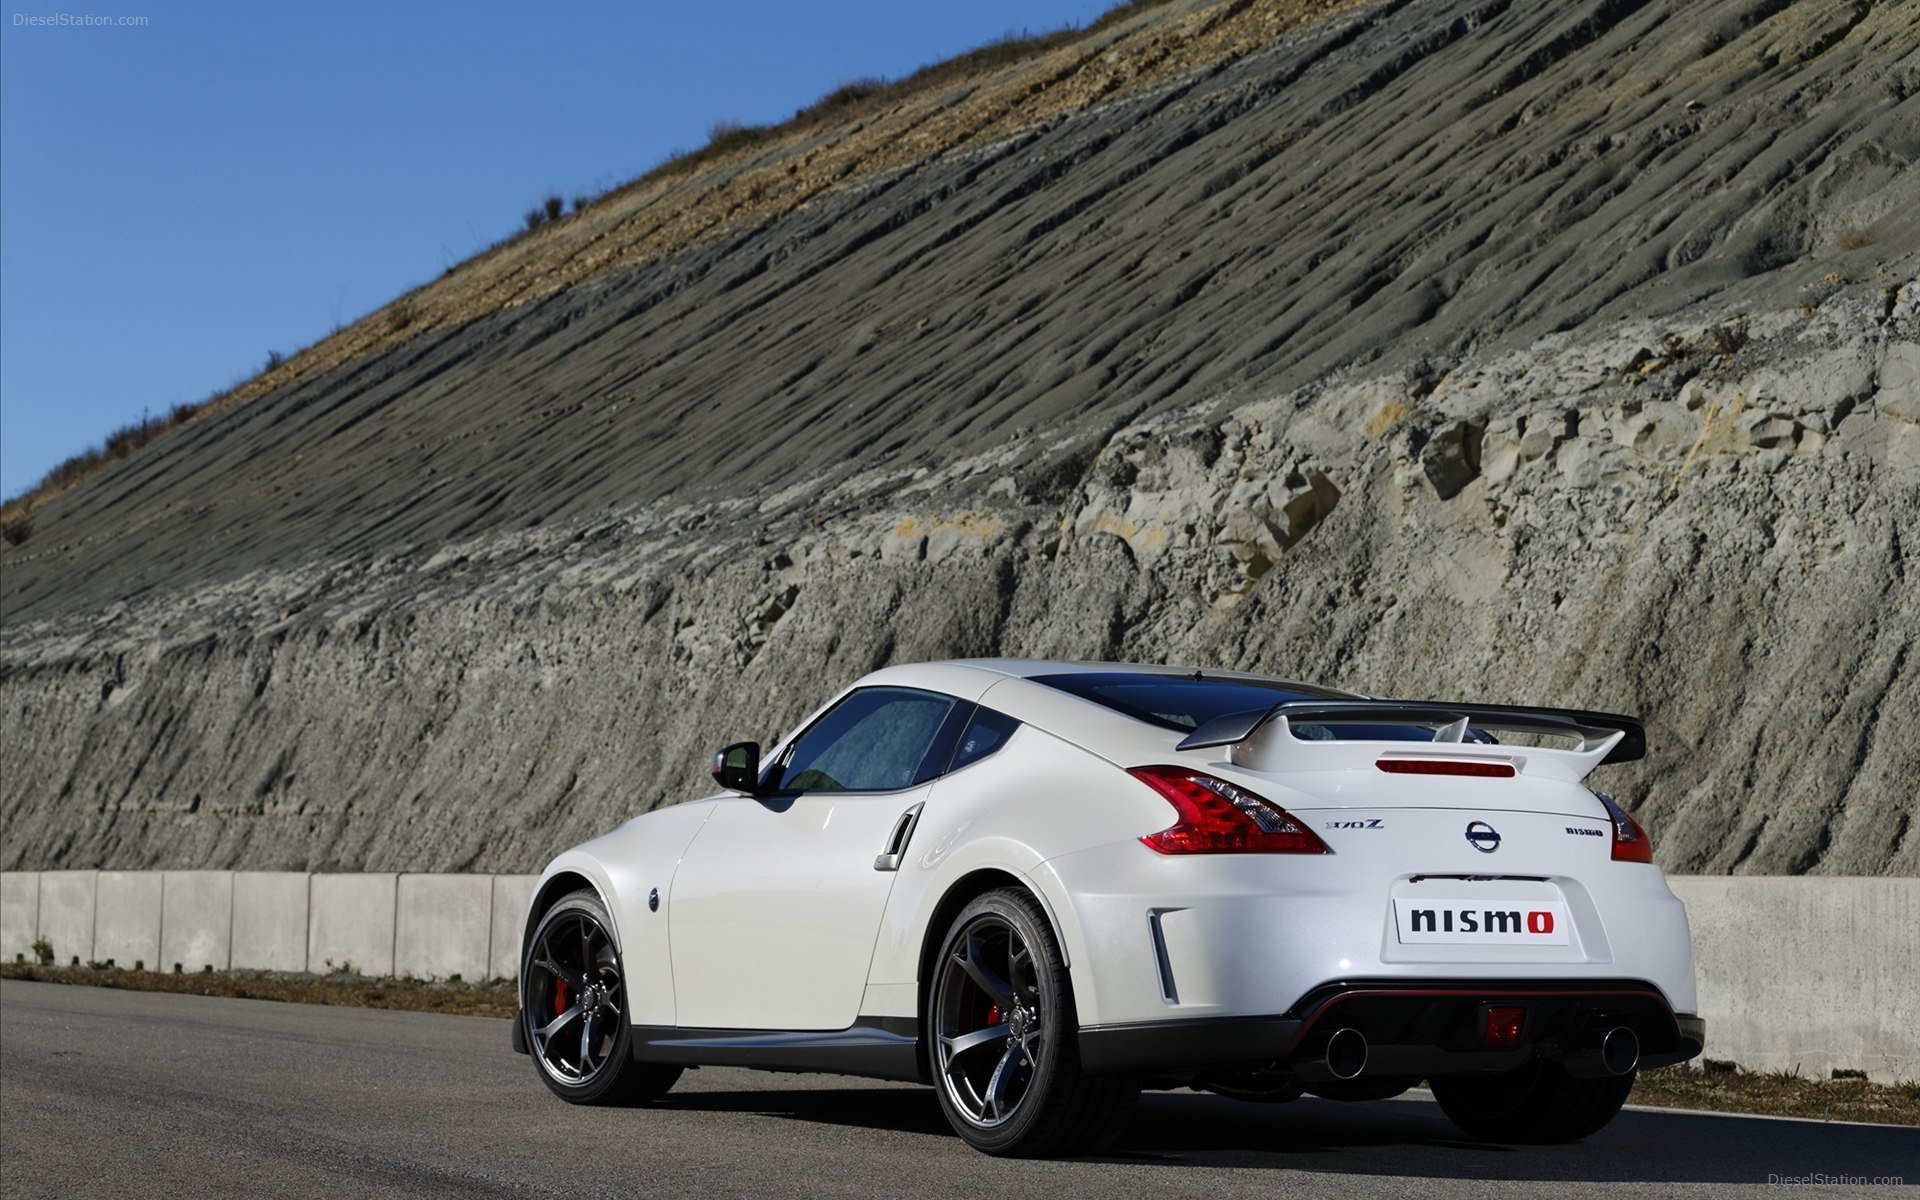 Latest Nissan 370Z Nismo 2014 Widescreen Exotic Car Wallpaper 03 Free Download